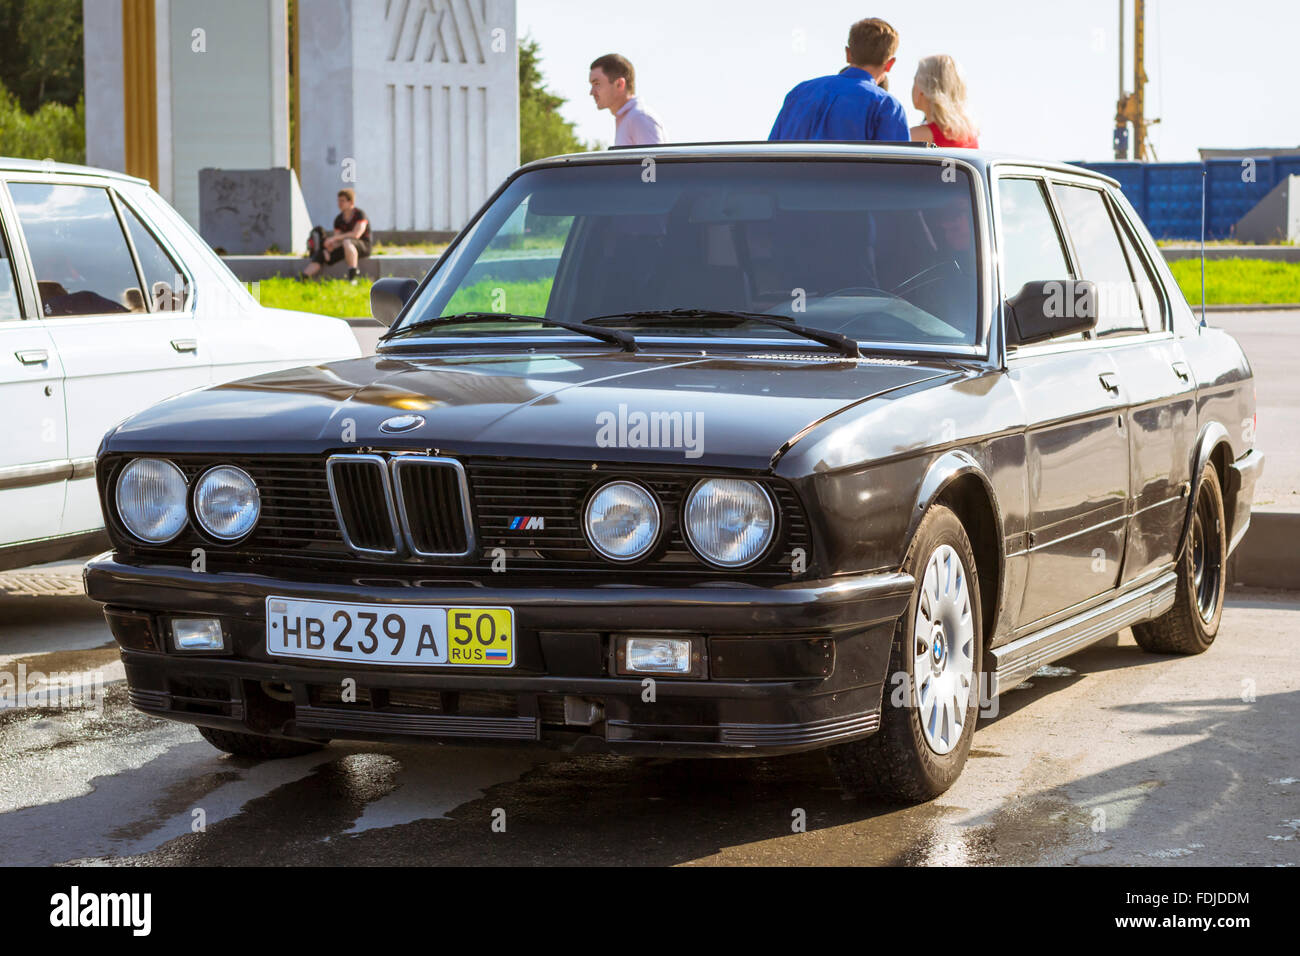 Bmw 3 Series E30 High Resolution Stock Photography And Images Alamy